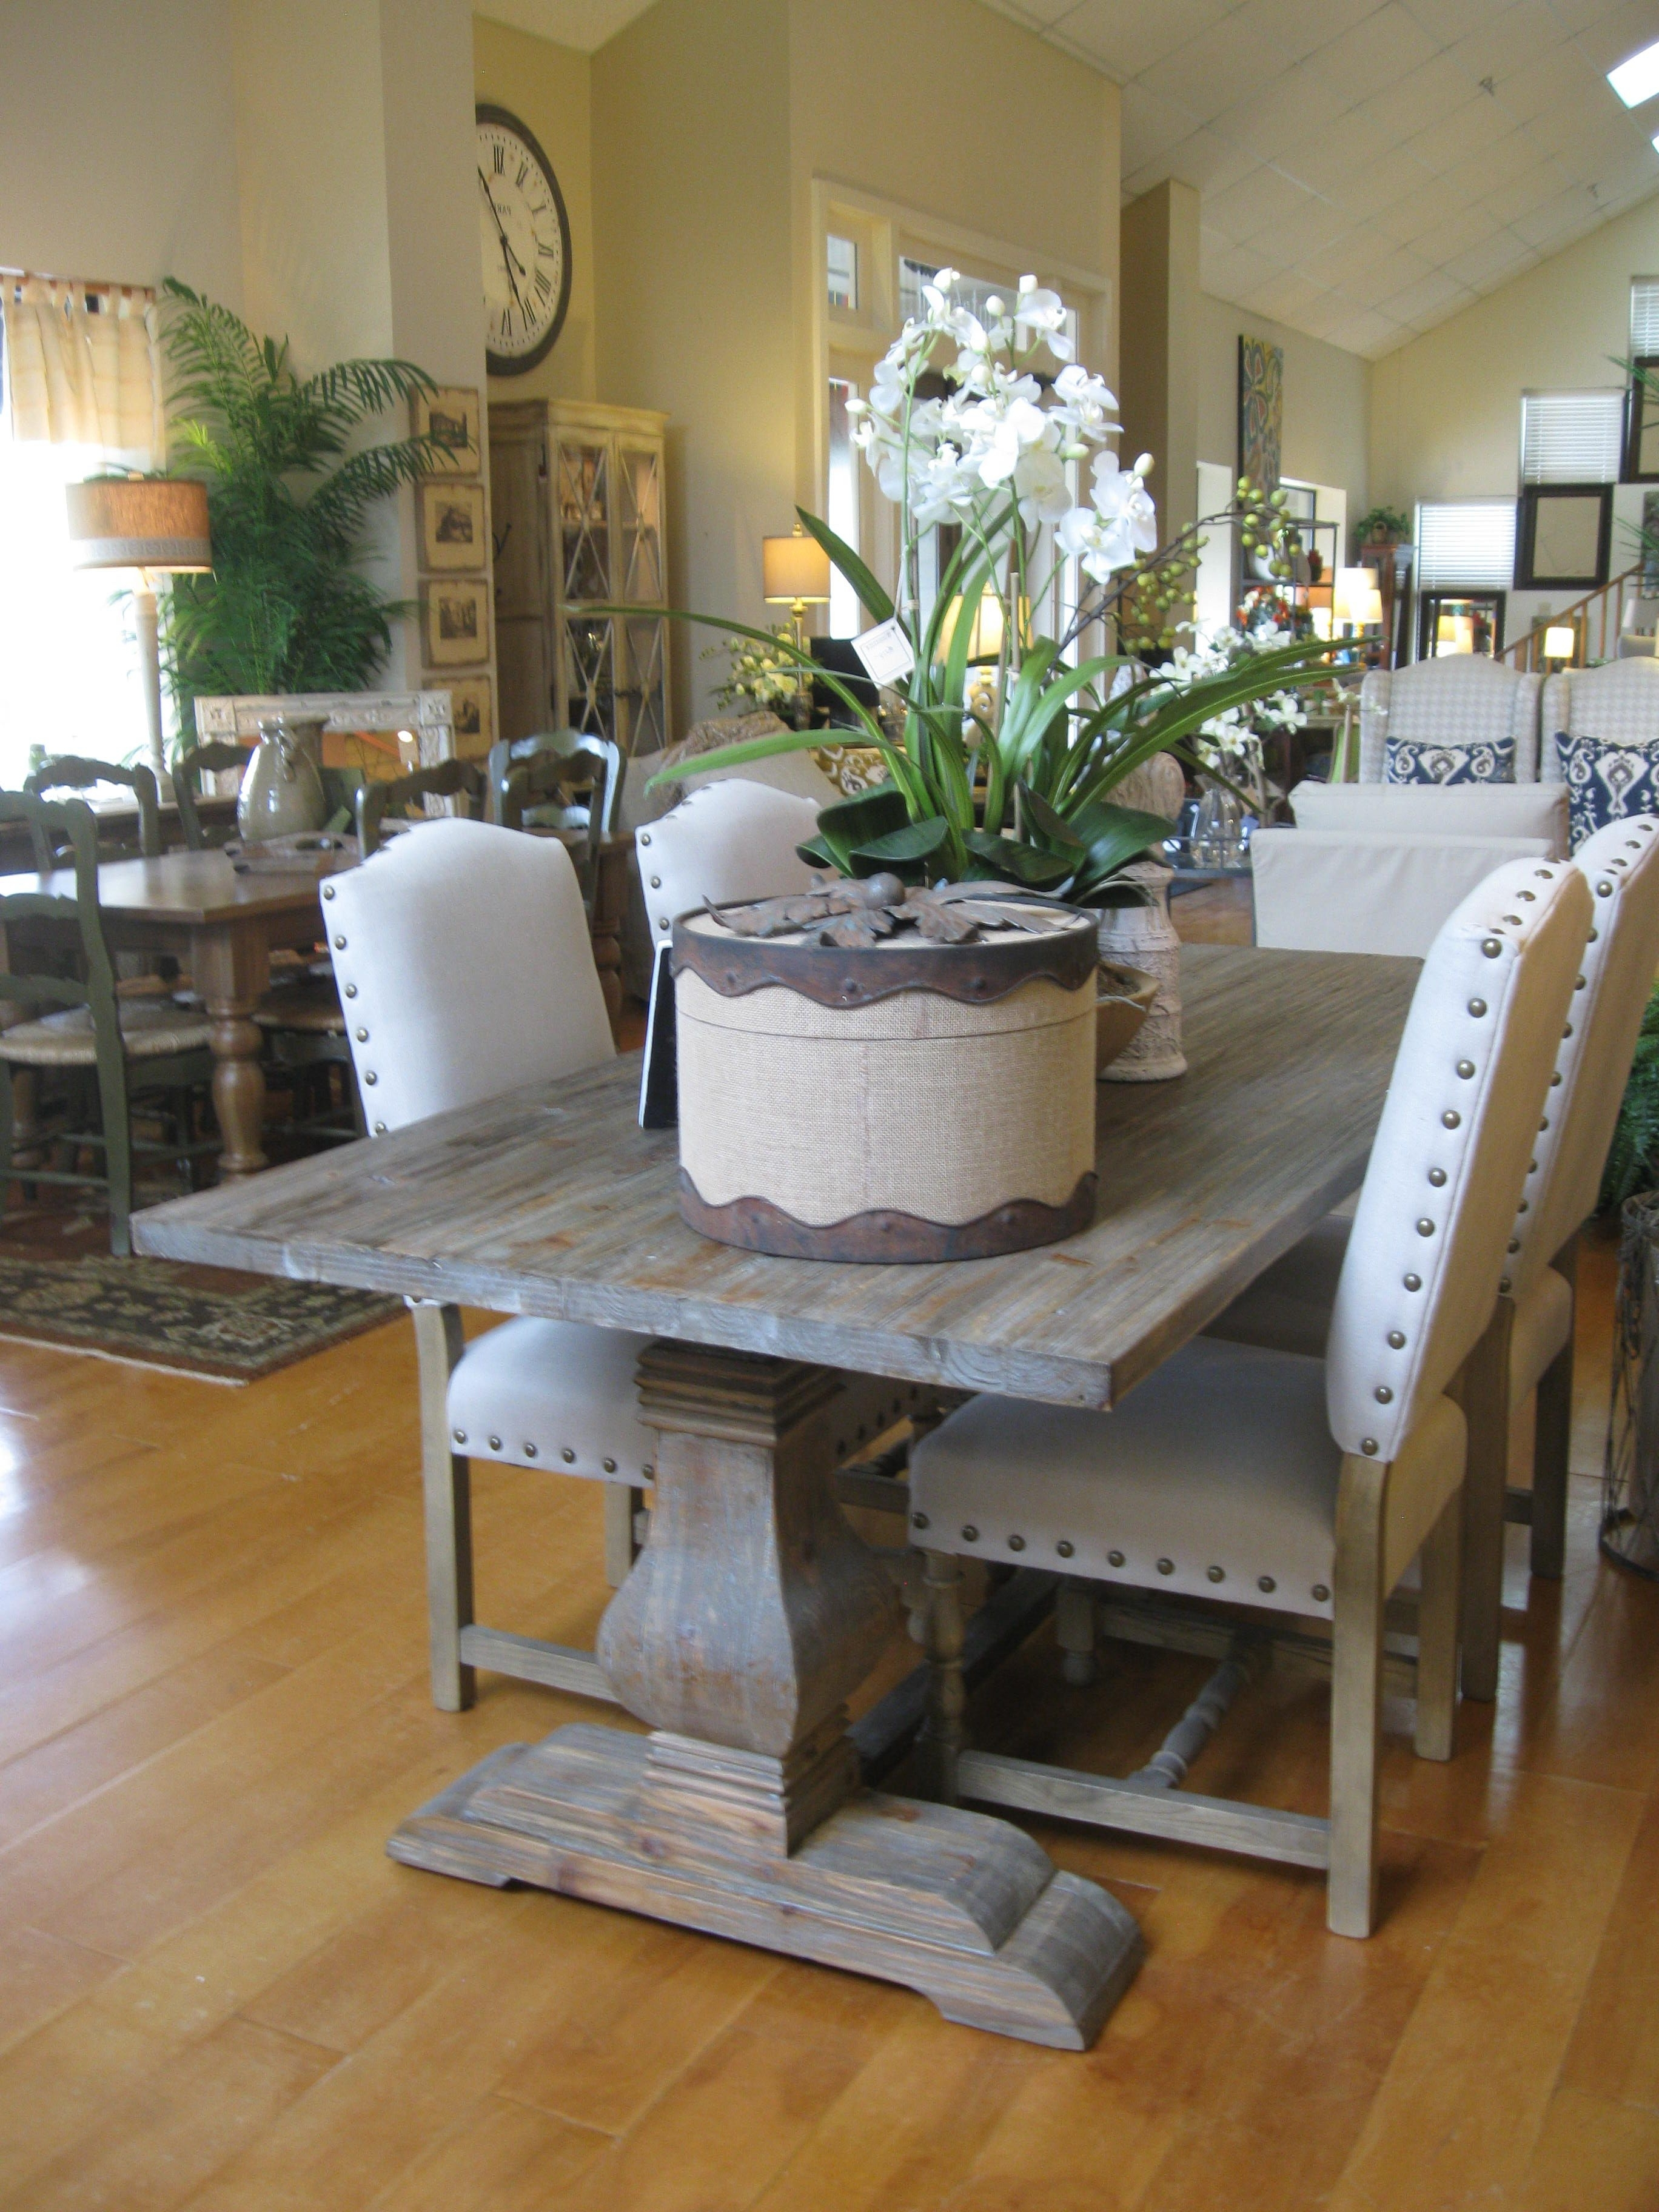 "The"" Trestle Table – I Do Absolutely Love This Tressle Table, But I Pertaining To Preferred Natural Wood & Recycled Elm 87 Inch Dining Tables (View 22 of 25)"